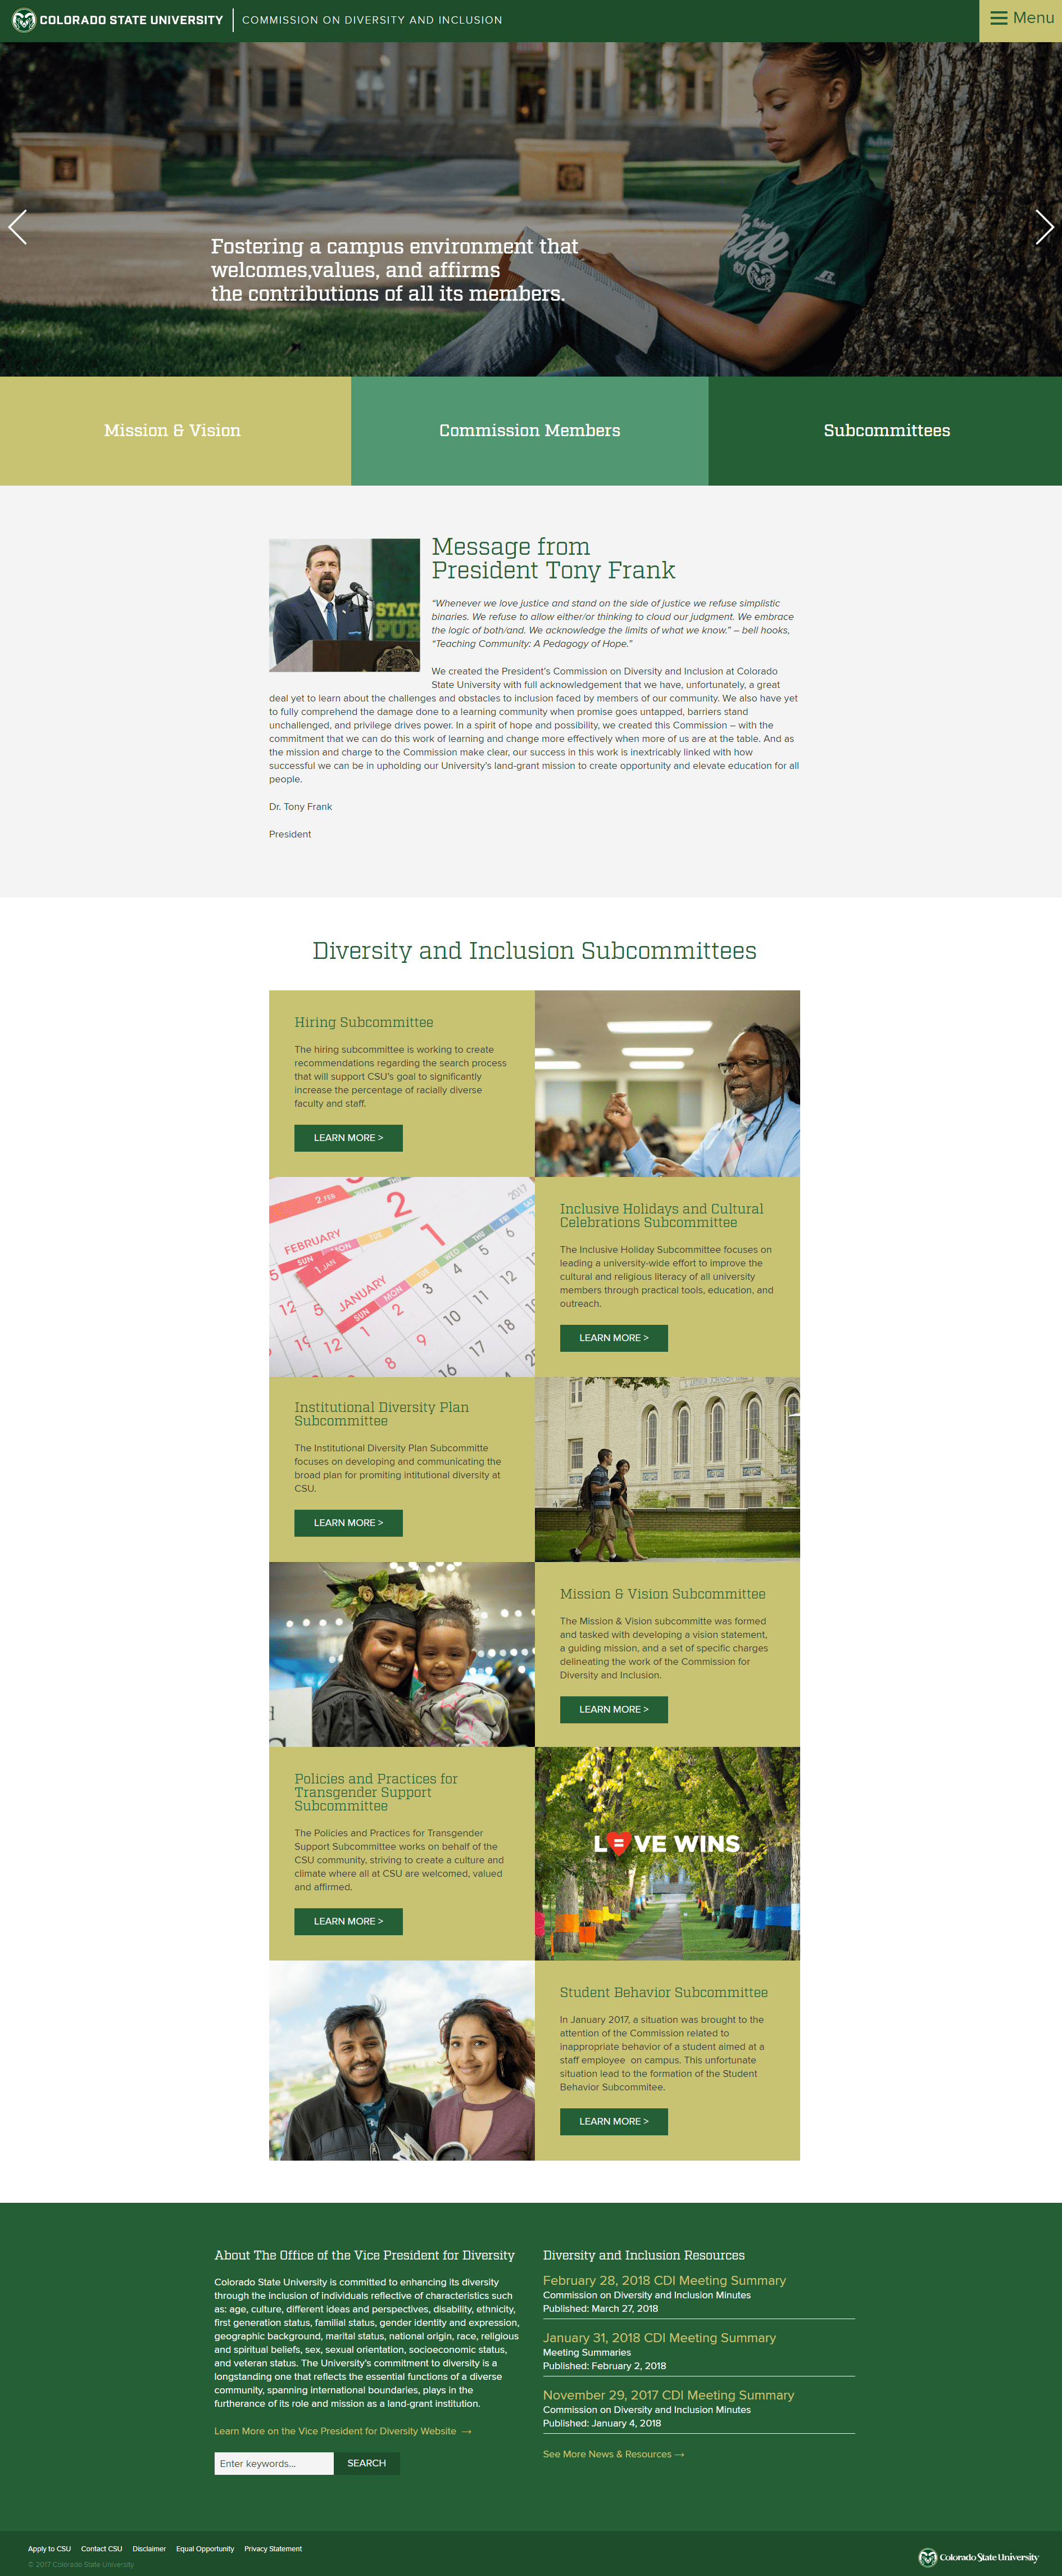 CDI Home Page